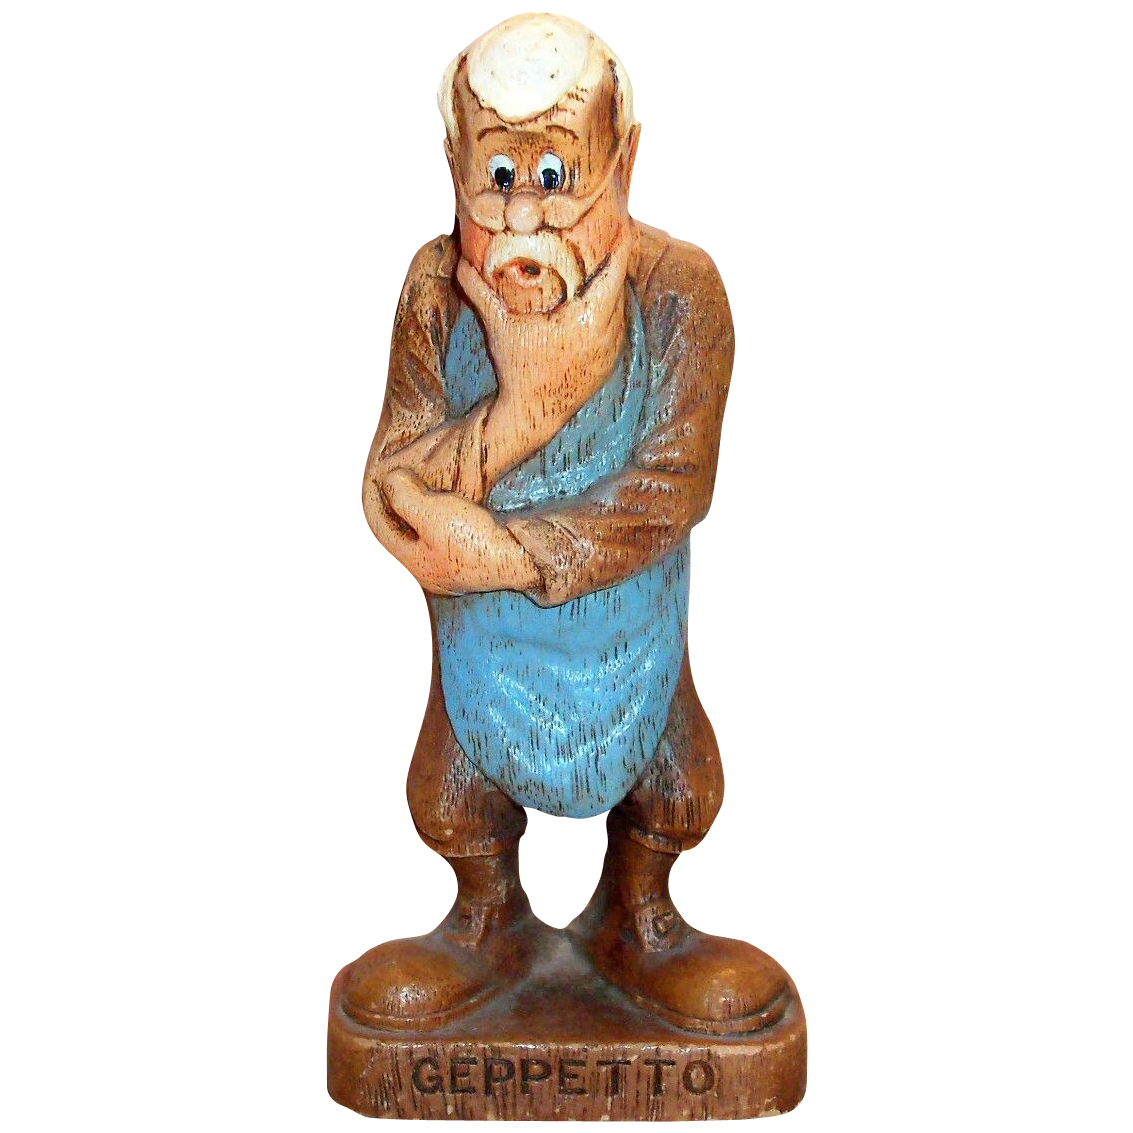 Multi Products Disney Handpainted Syroco Wood Composition Geppetto Character Figurine - Marked